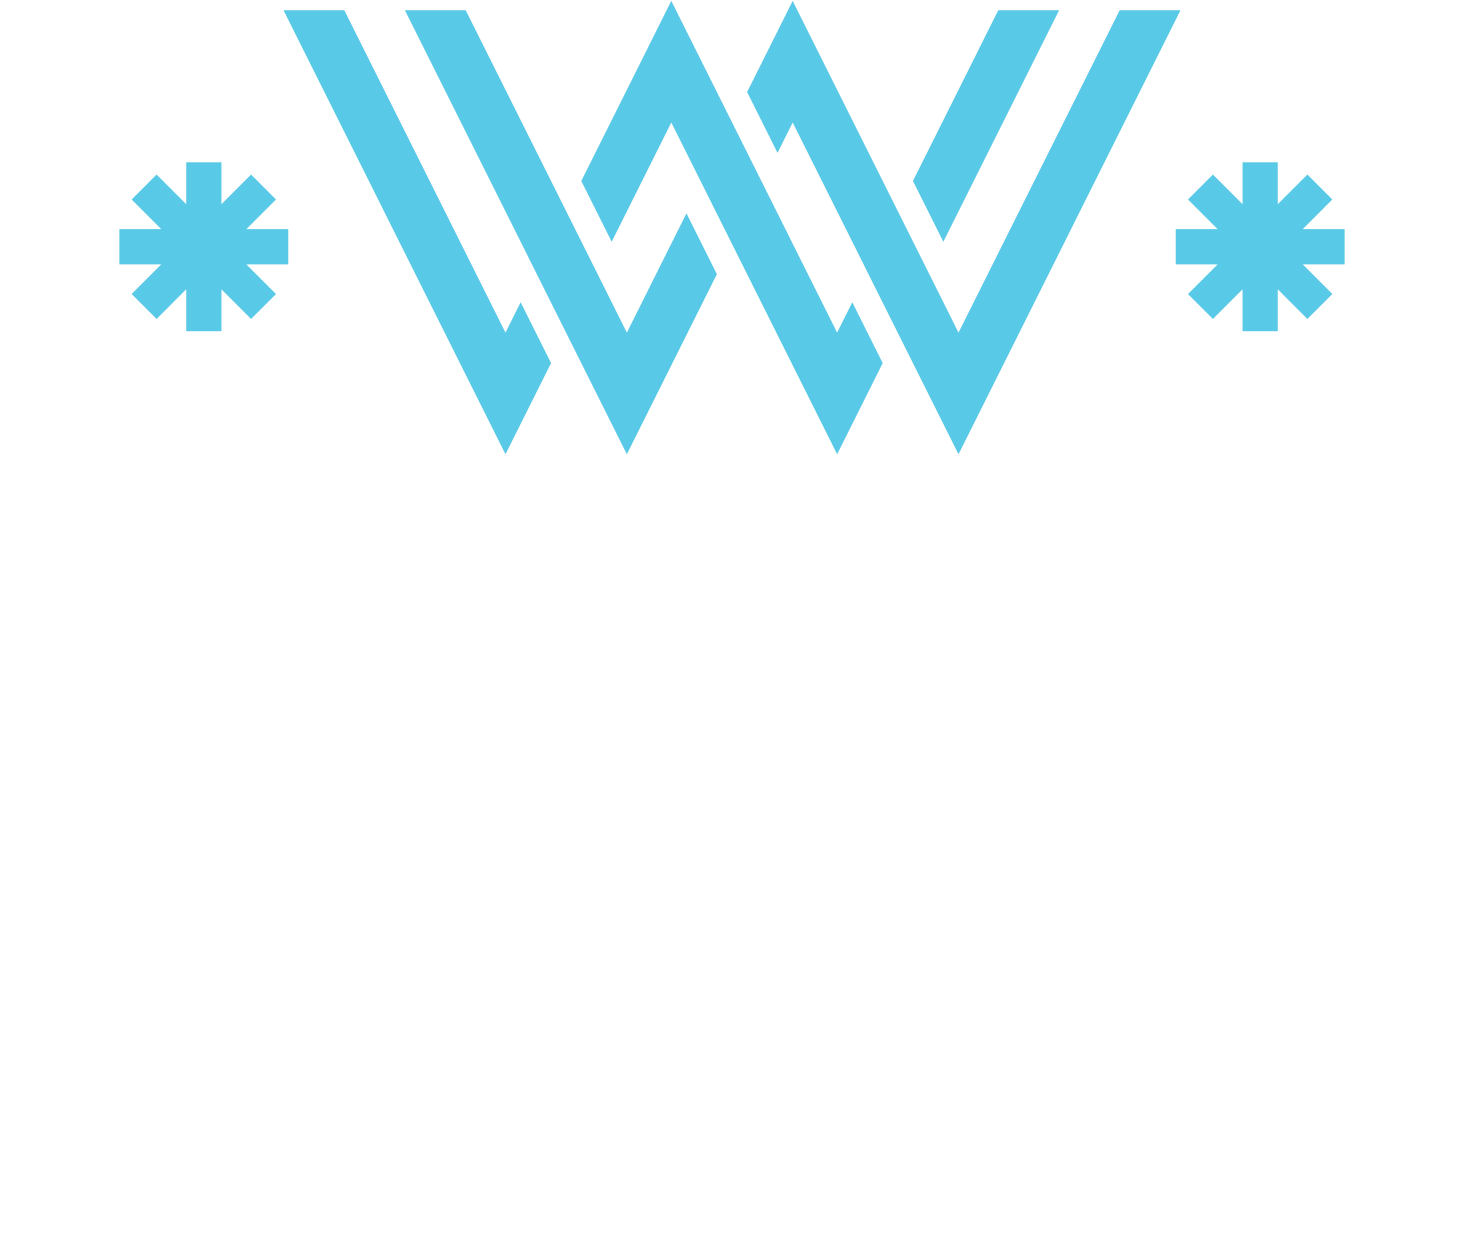 The Winter Walk